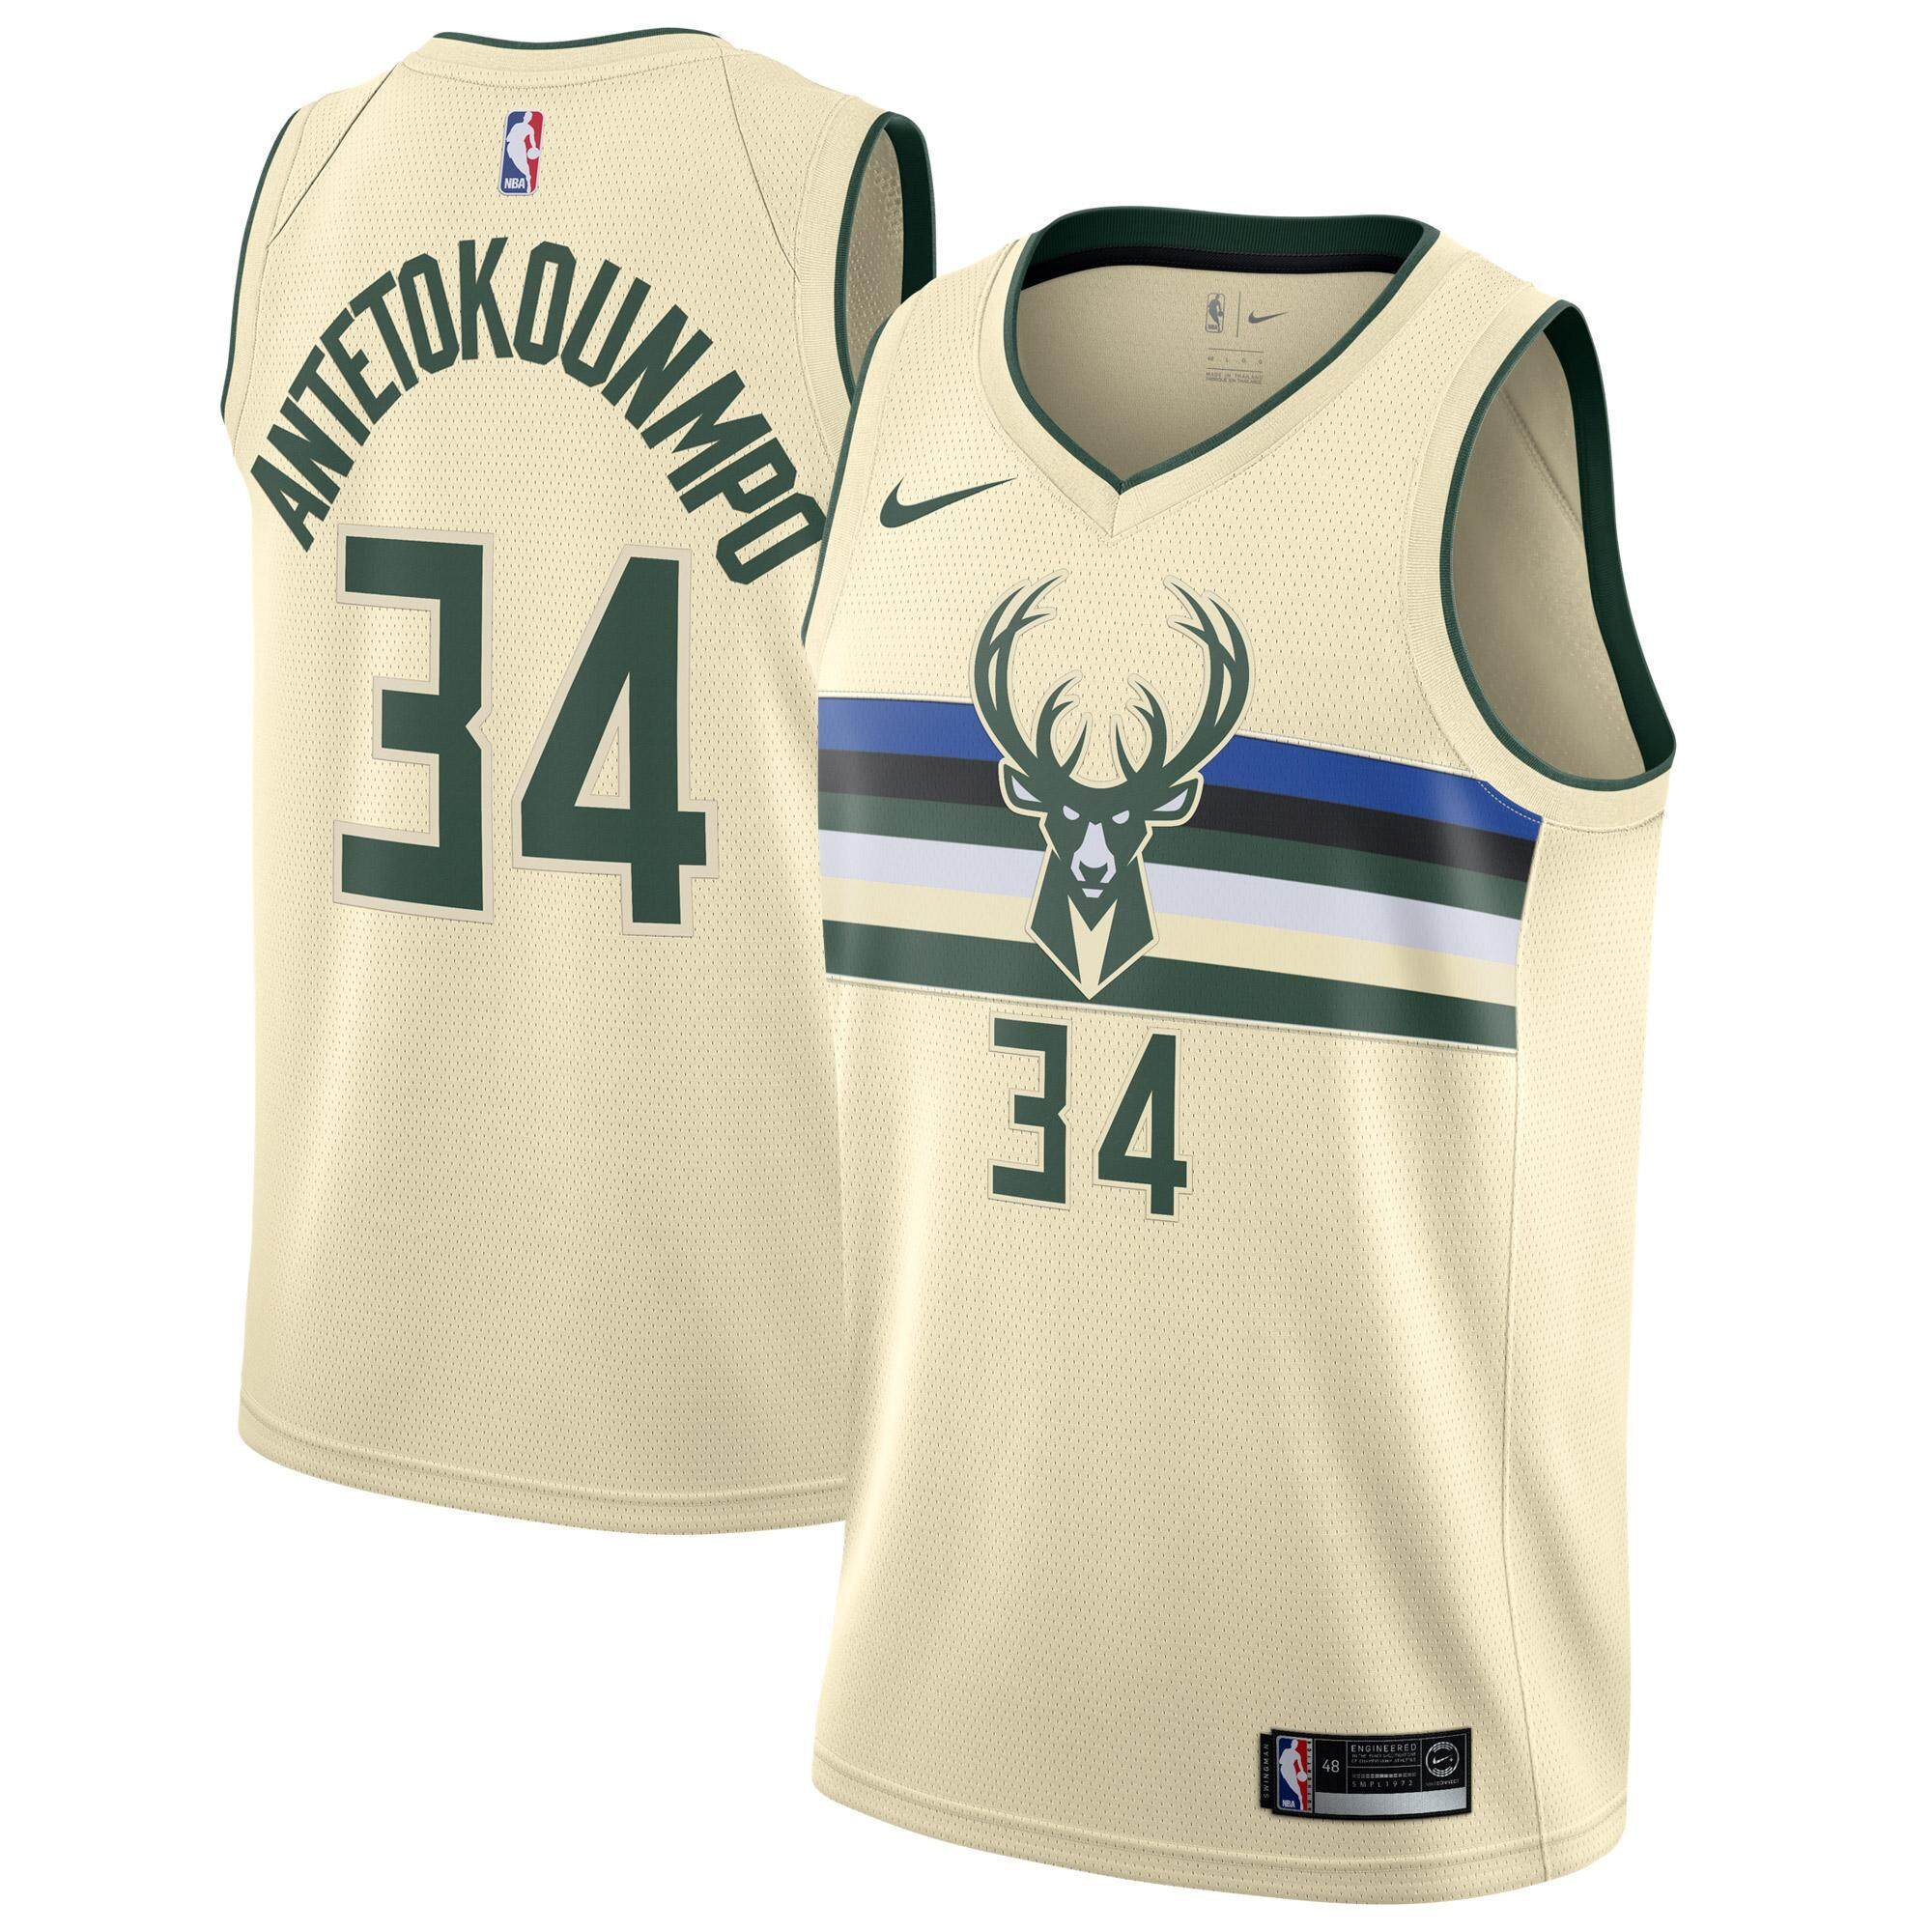 c07fb3cab118 NBA Basketball Clothes Num 34 Swingman Jersey Milwaukee Bucks Giannis  Antetokounmpo For Male Official Authentic lightweight